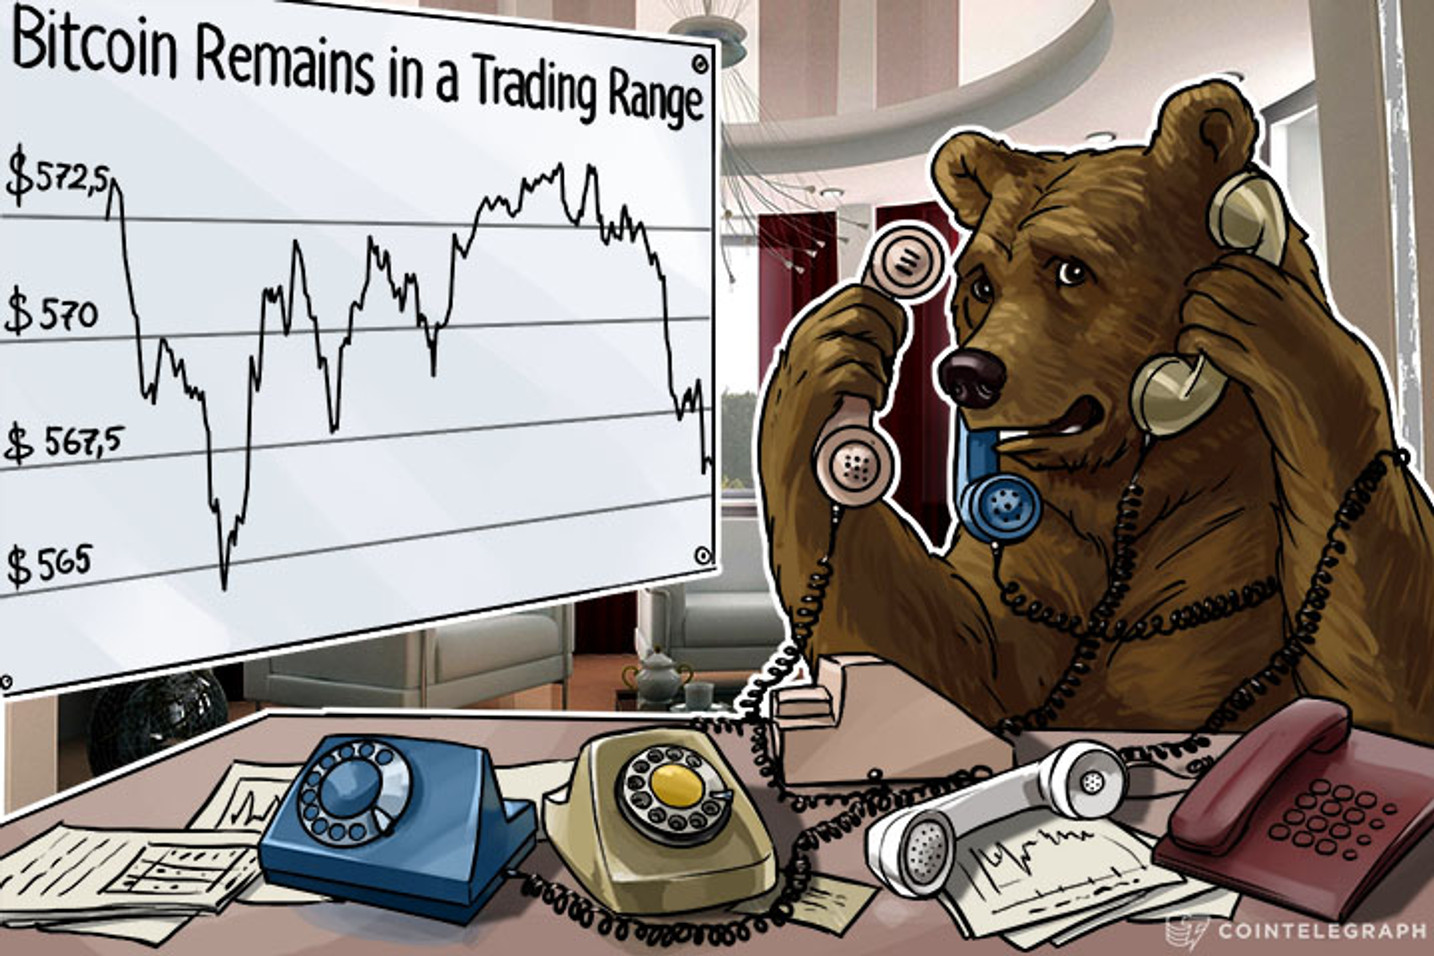 Despite Bearish Price Action Over the Weekend, Bitcoin Remains in a Trading Range